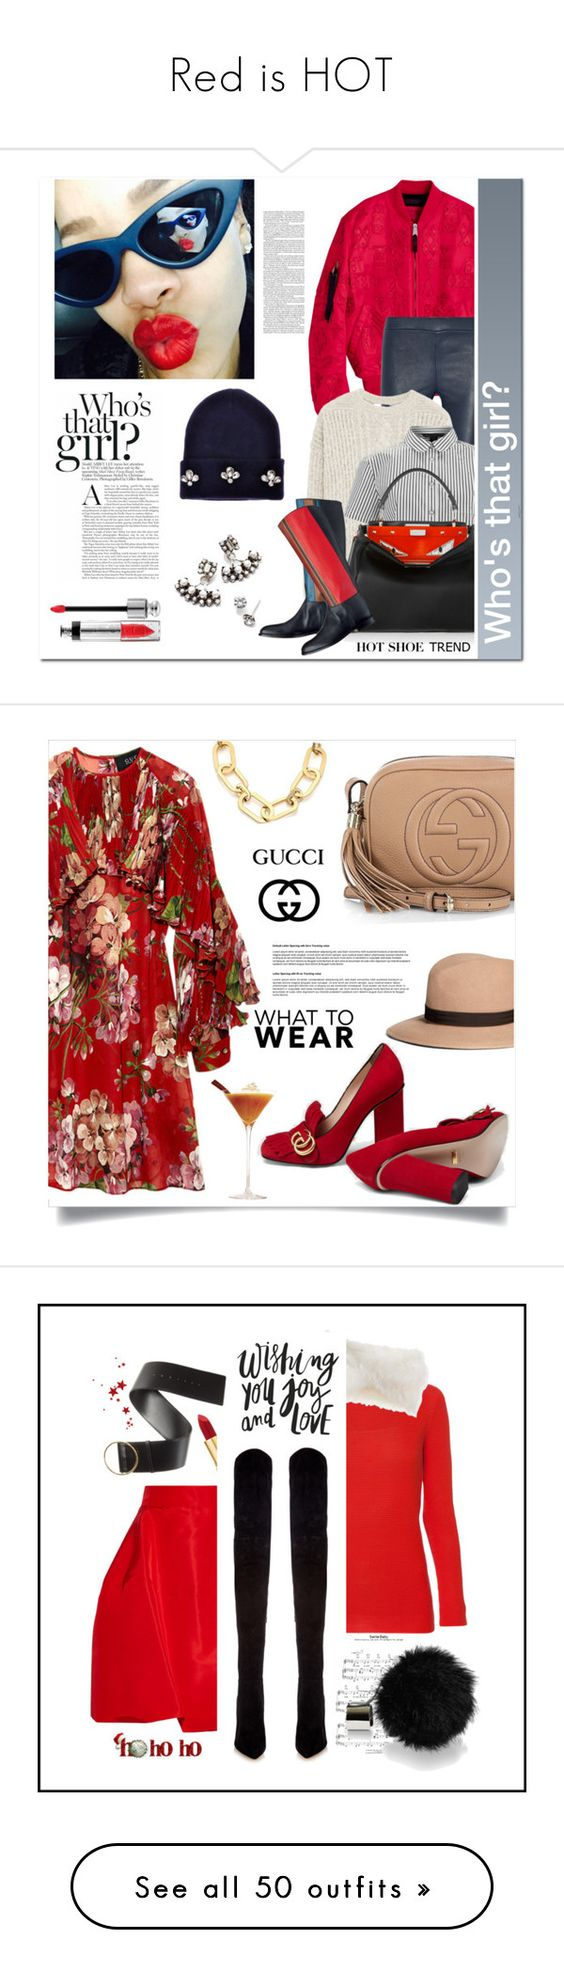 """Red is HOT"" by erindream ❤ liked on Polyvore featuring Retrò, Current/Elliott, MANGO, Marc by Marc Jacobs, Fendi, DANNIJO, Gucci, Michael Kors, Brooks Brothers and Les Copains"